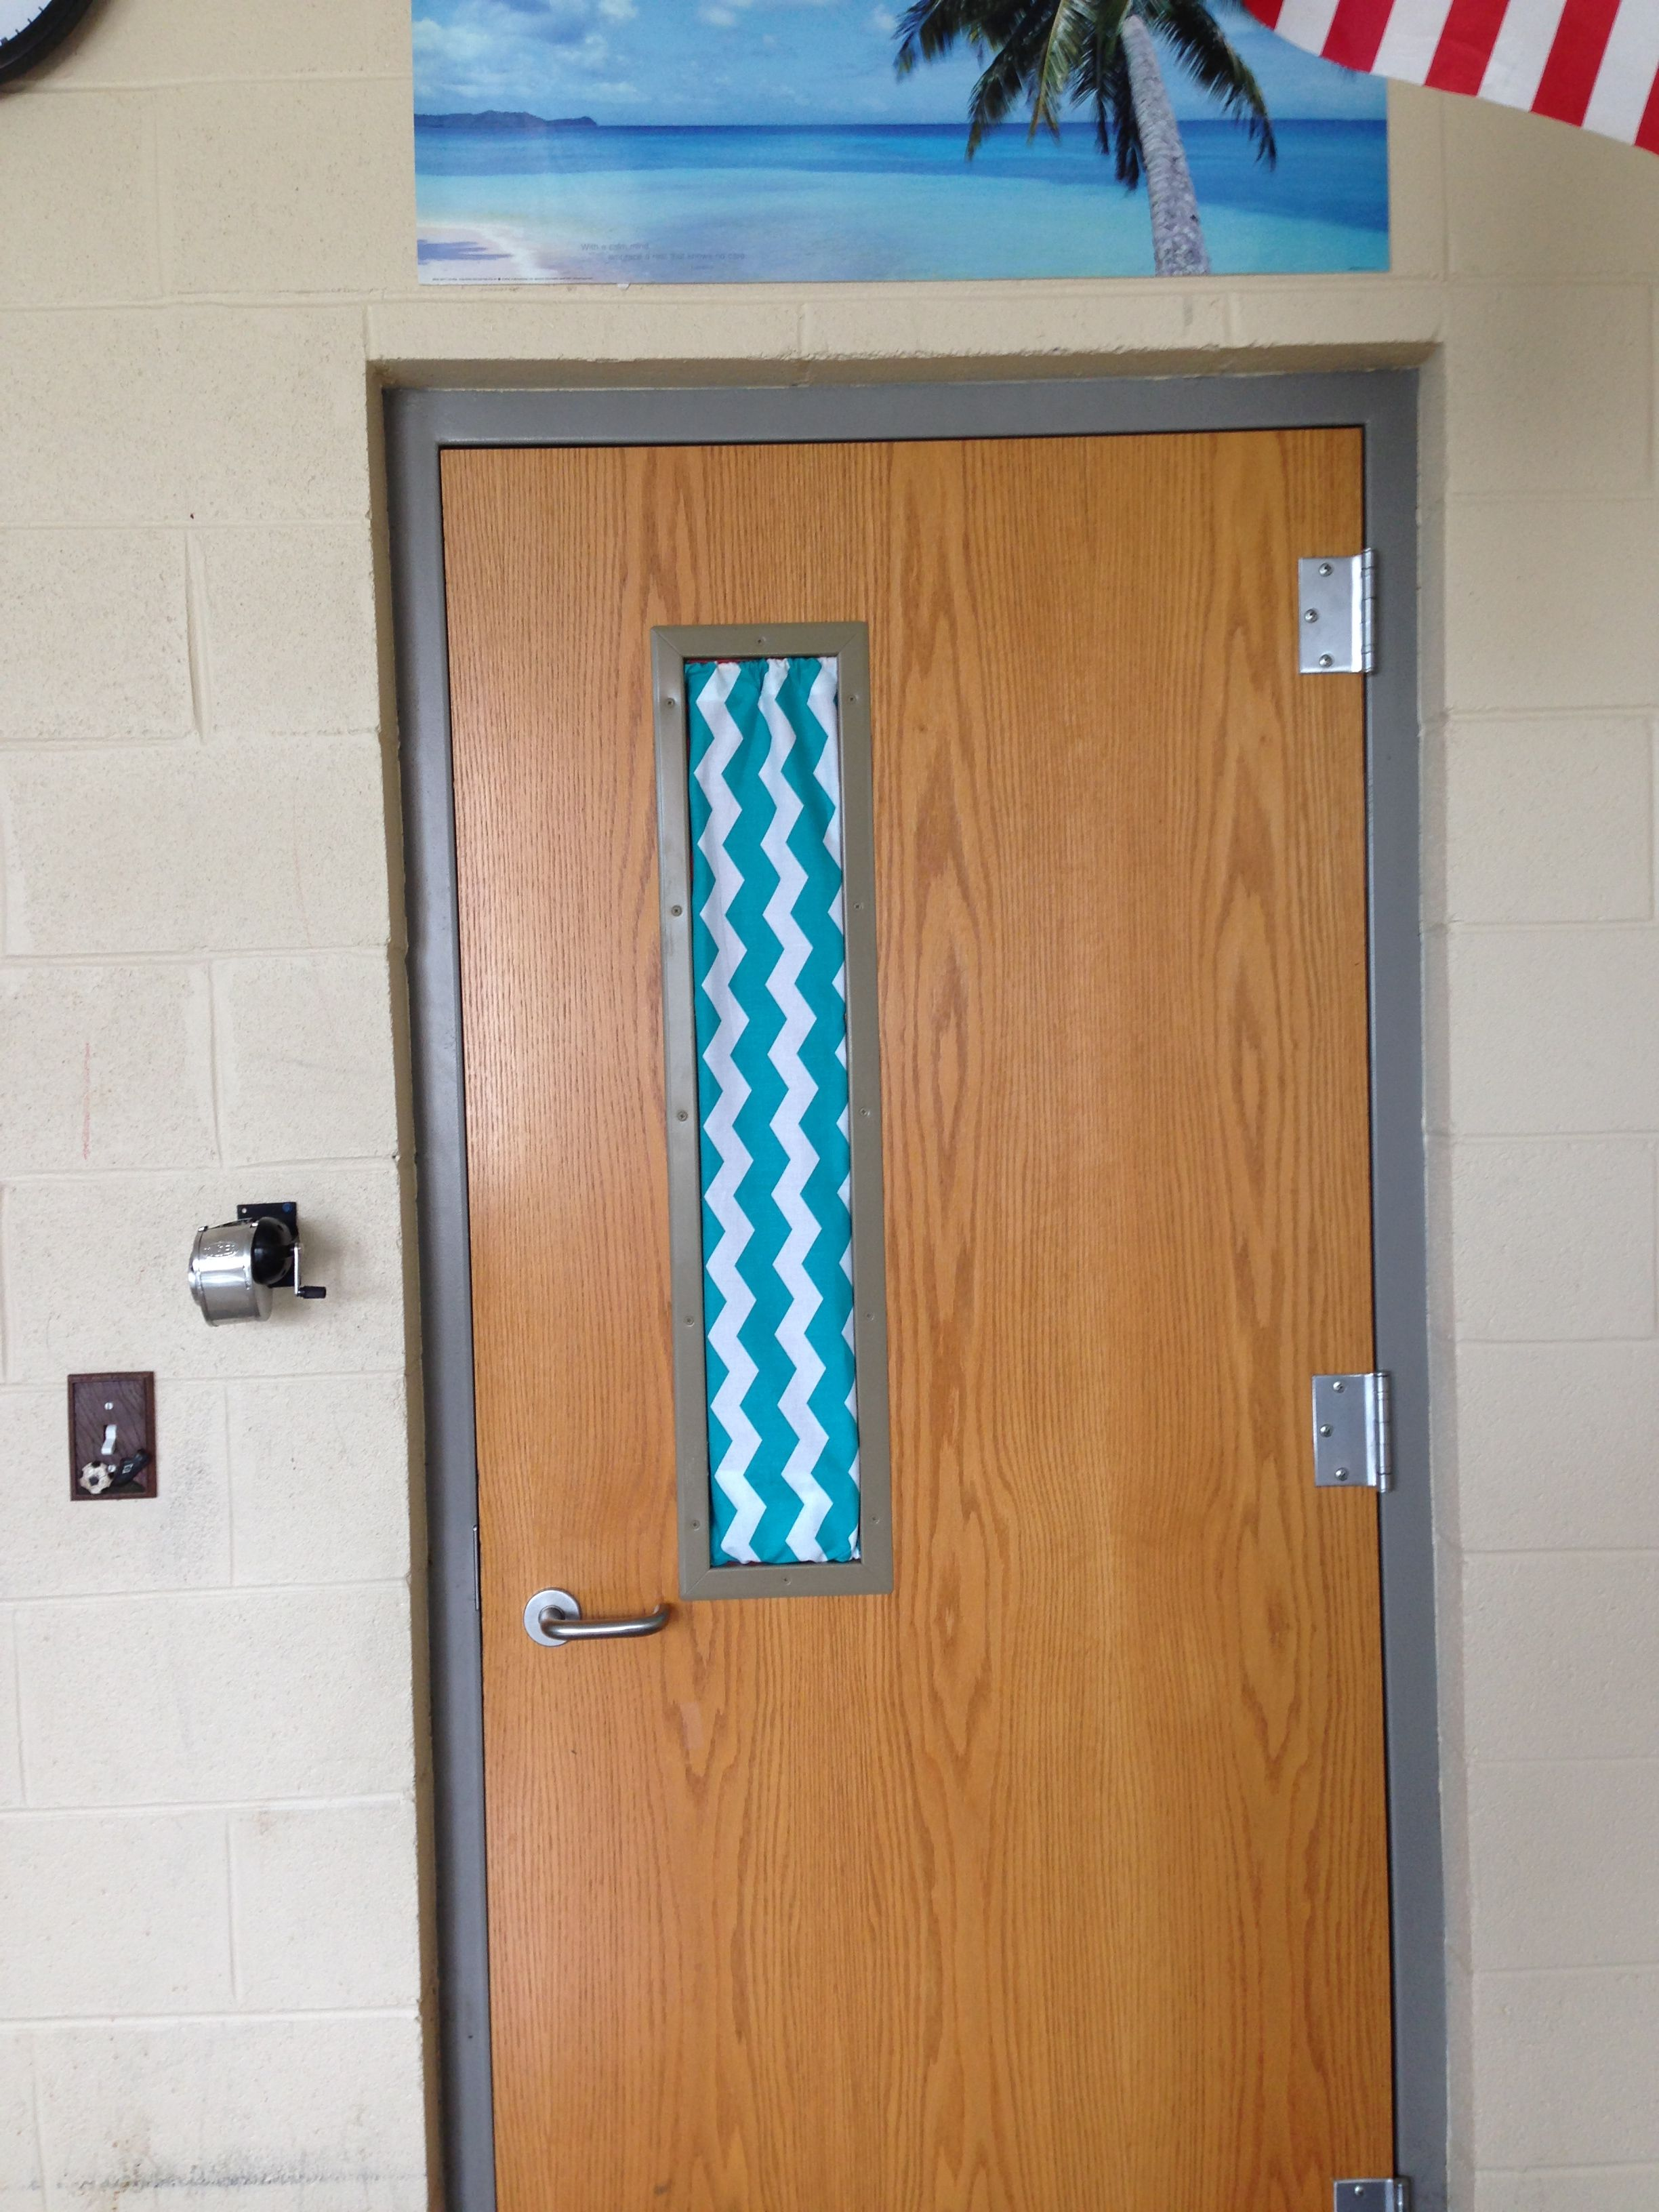 Classroom door window cover!!! I actually used pencils as